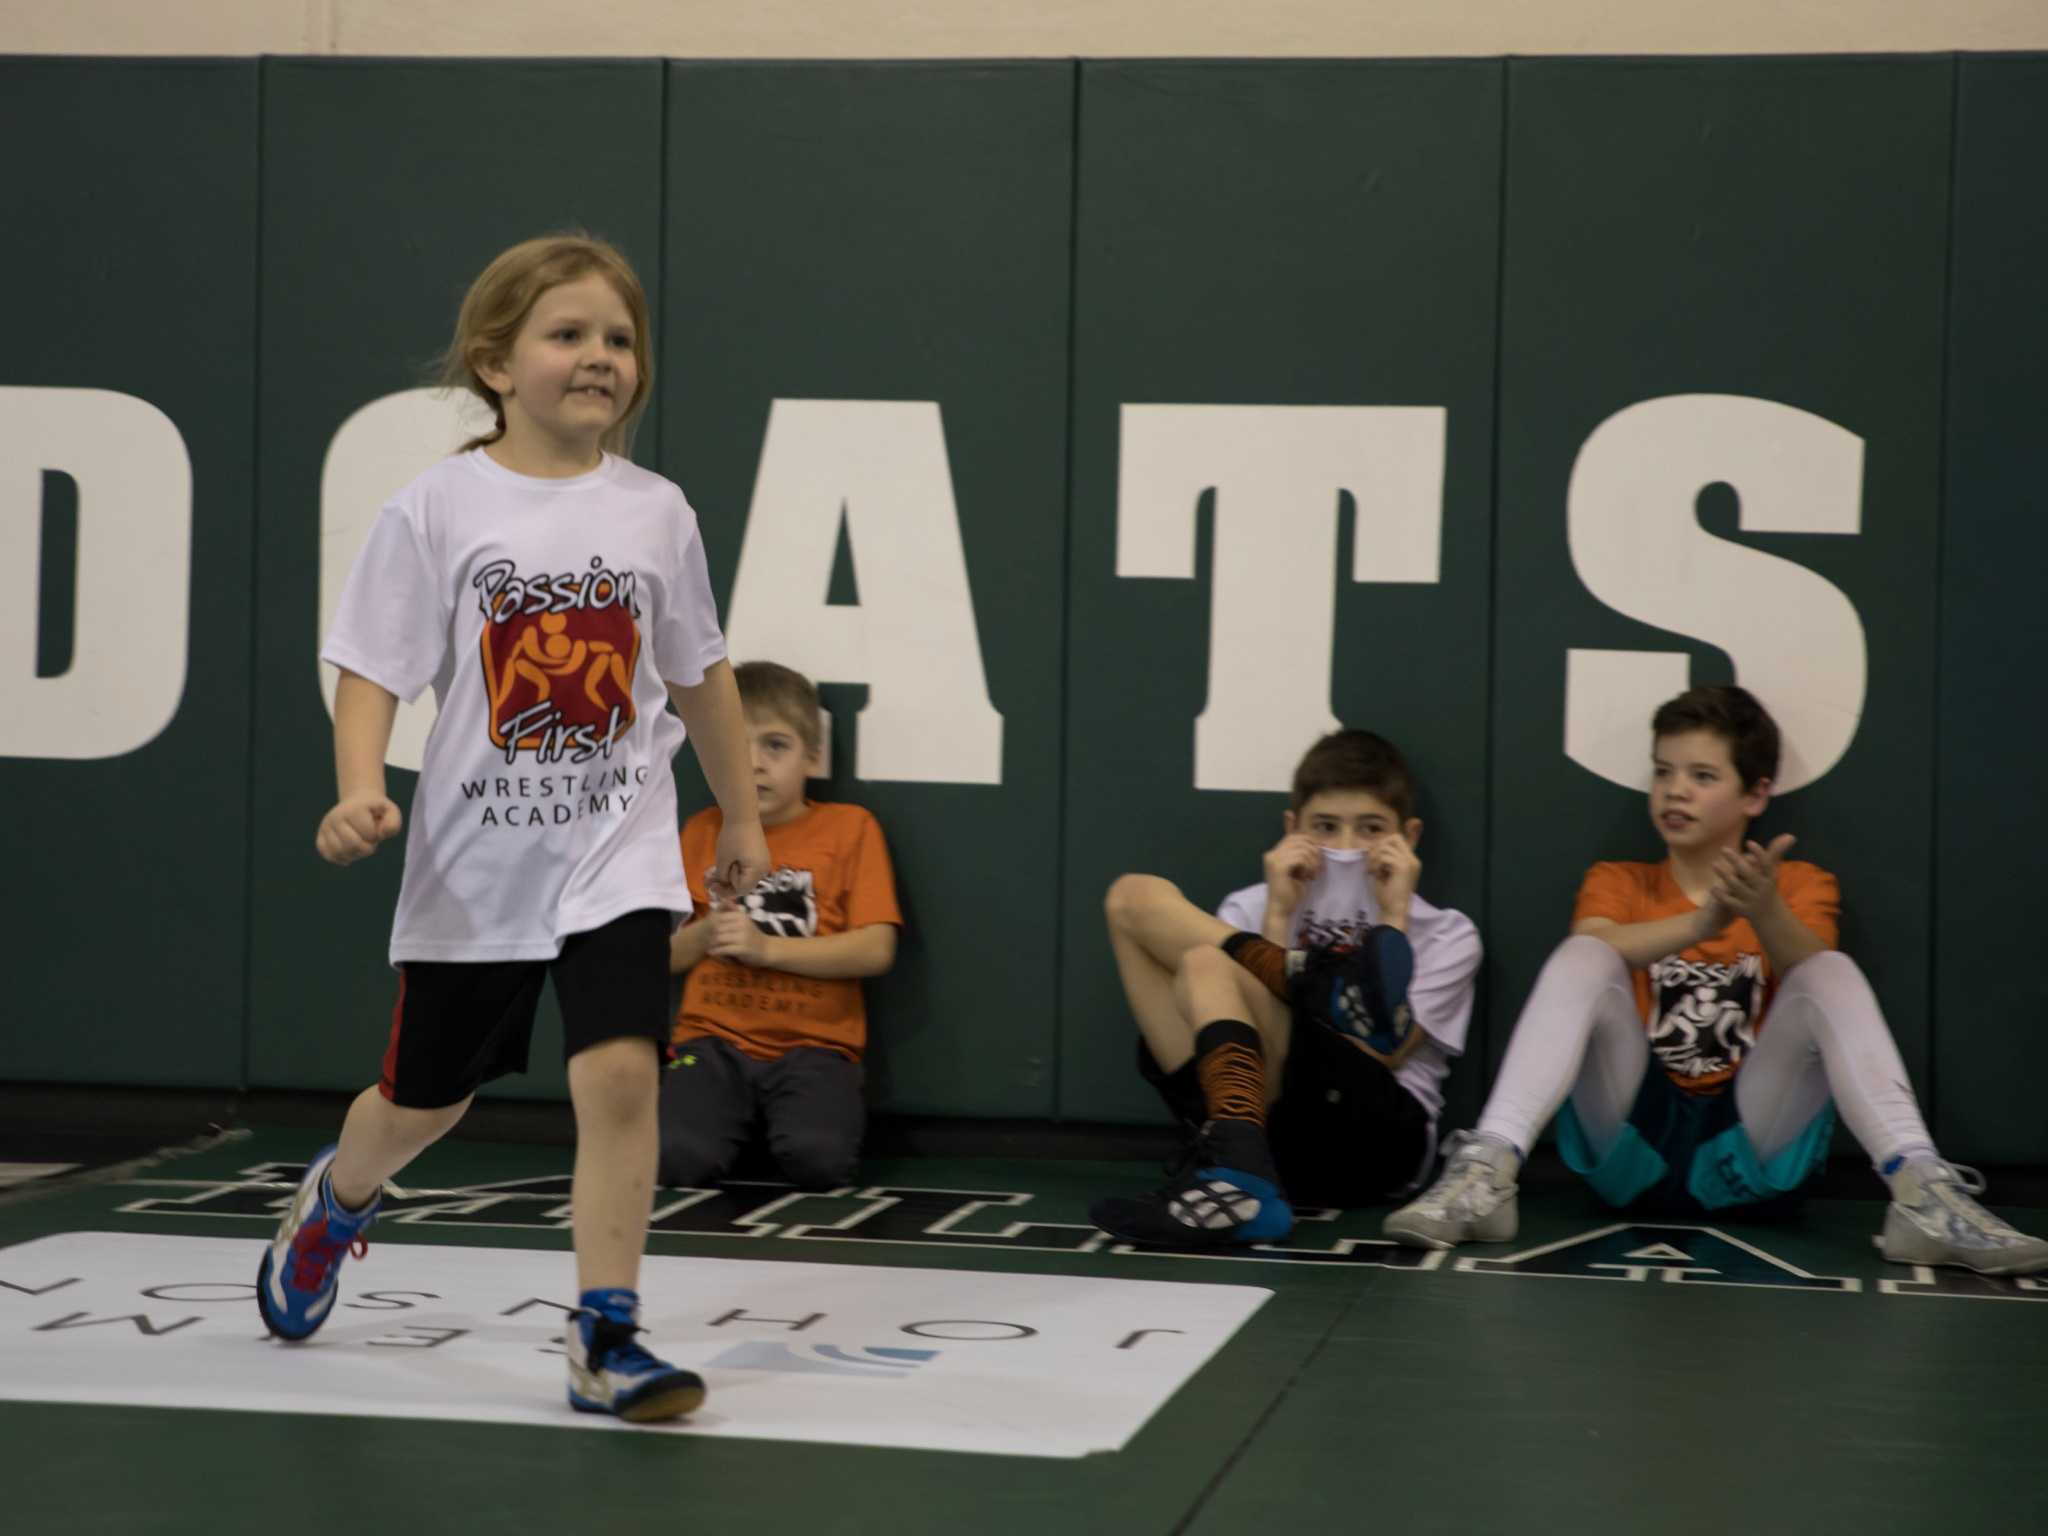 2019 Passion First Wrestling Academy